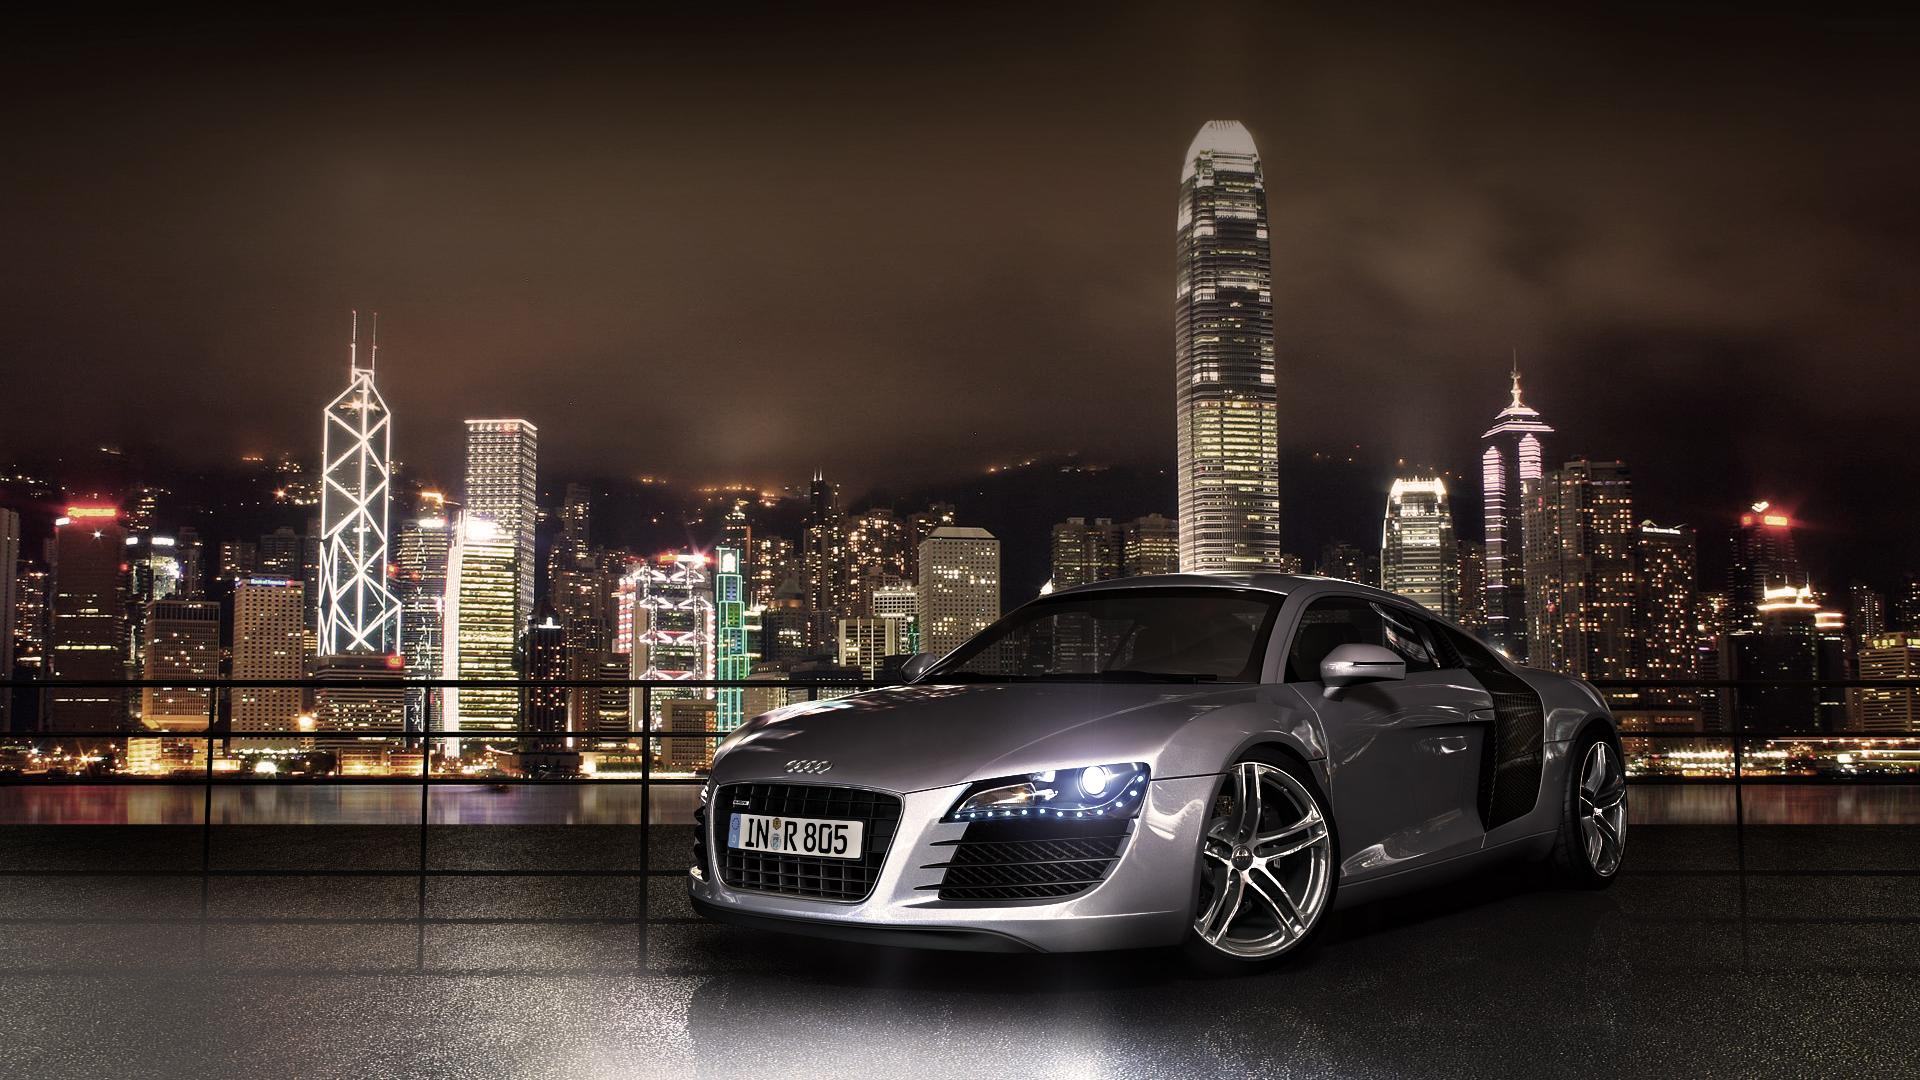 cities cars audi audi r8 skyscraper illumination nightlife 1920x1080